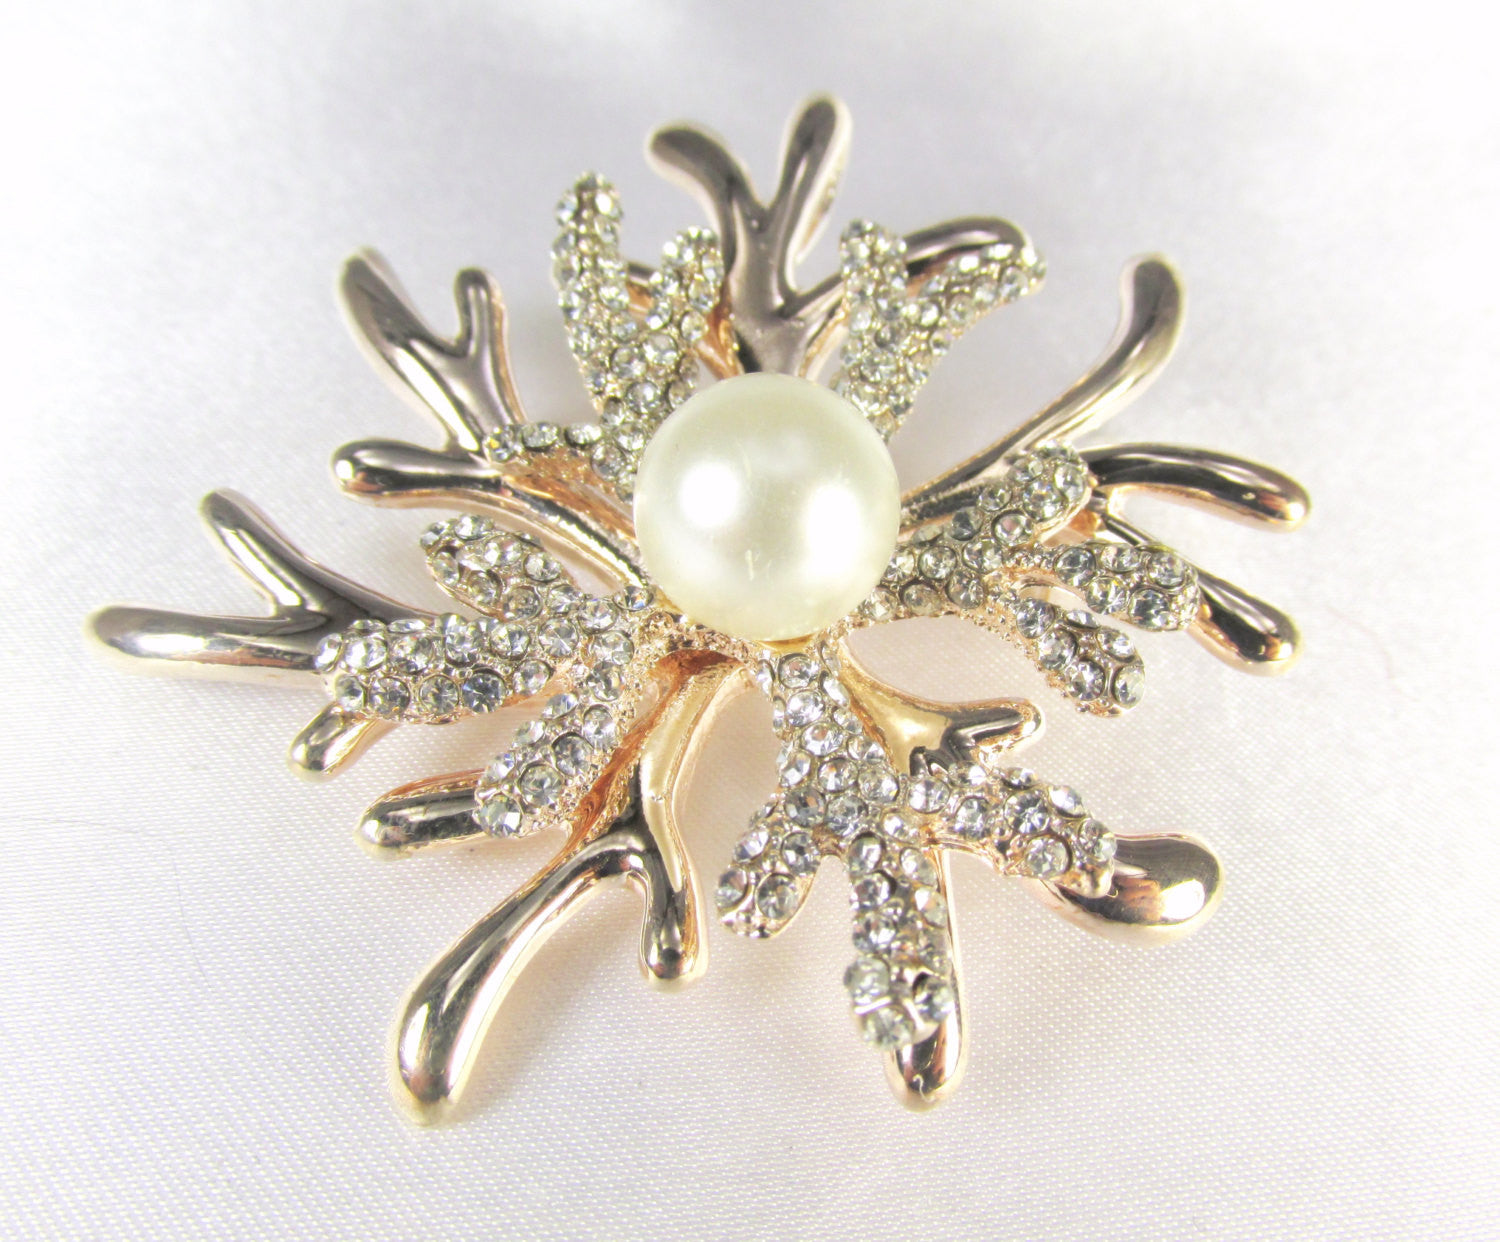 Rosegold White Pearl and Crystal Coral Reef Brooch - Odyssey Creations